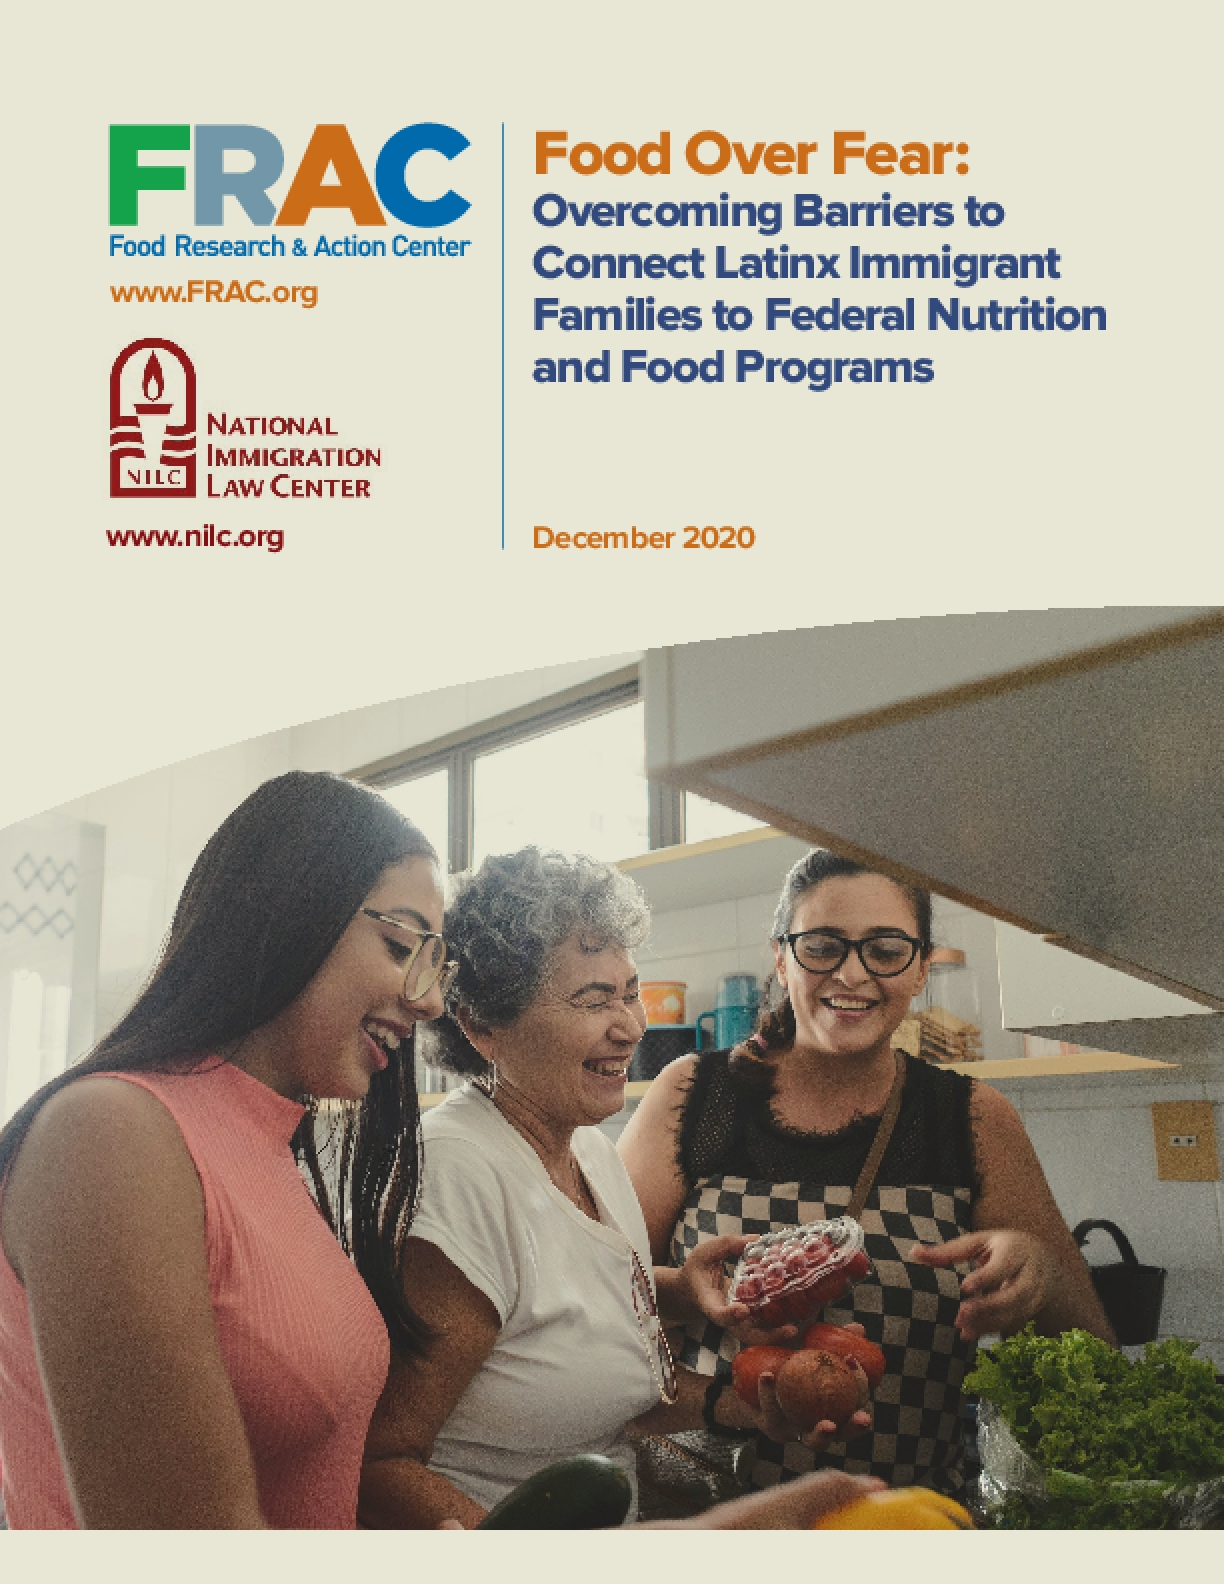 Food Over Fear: Overcoming Barriers to Connect Latinx Immigrant Families to Federal Nutrition and Food Programs